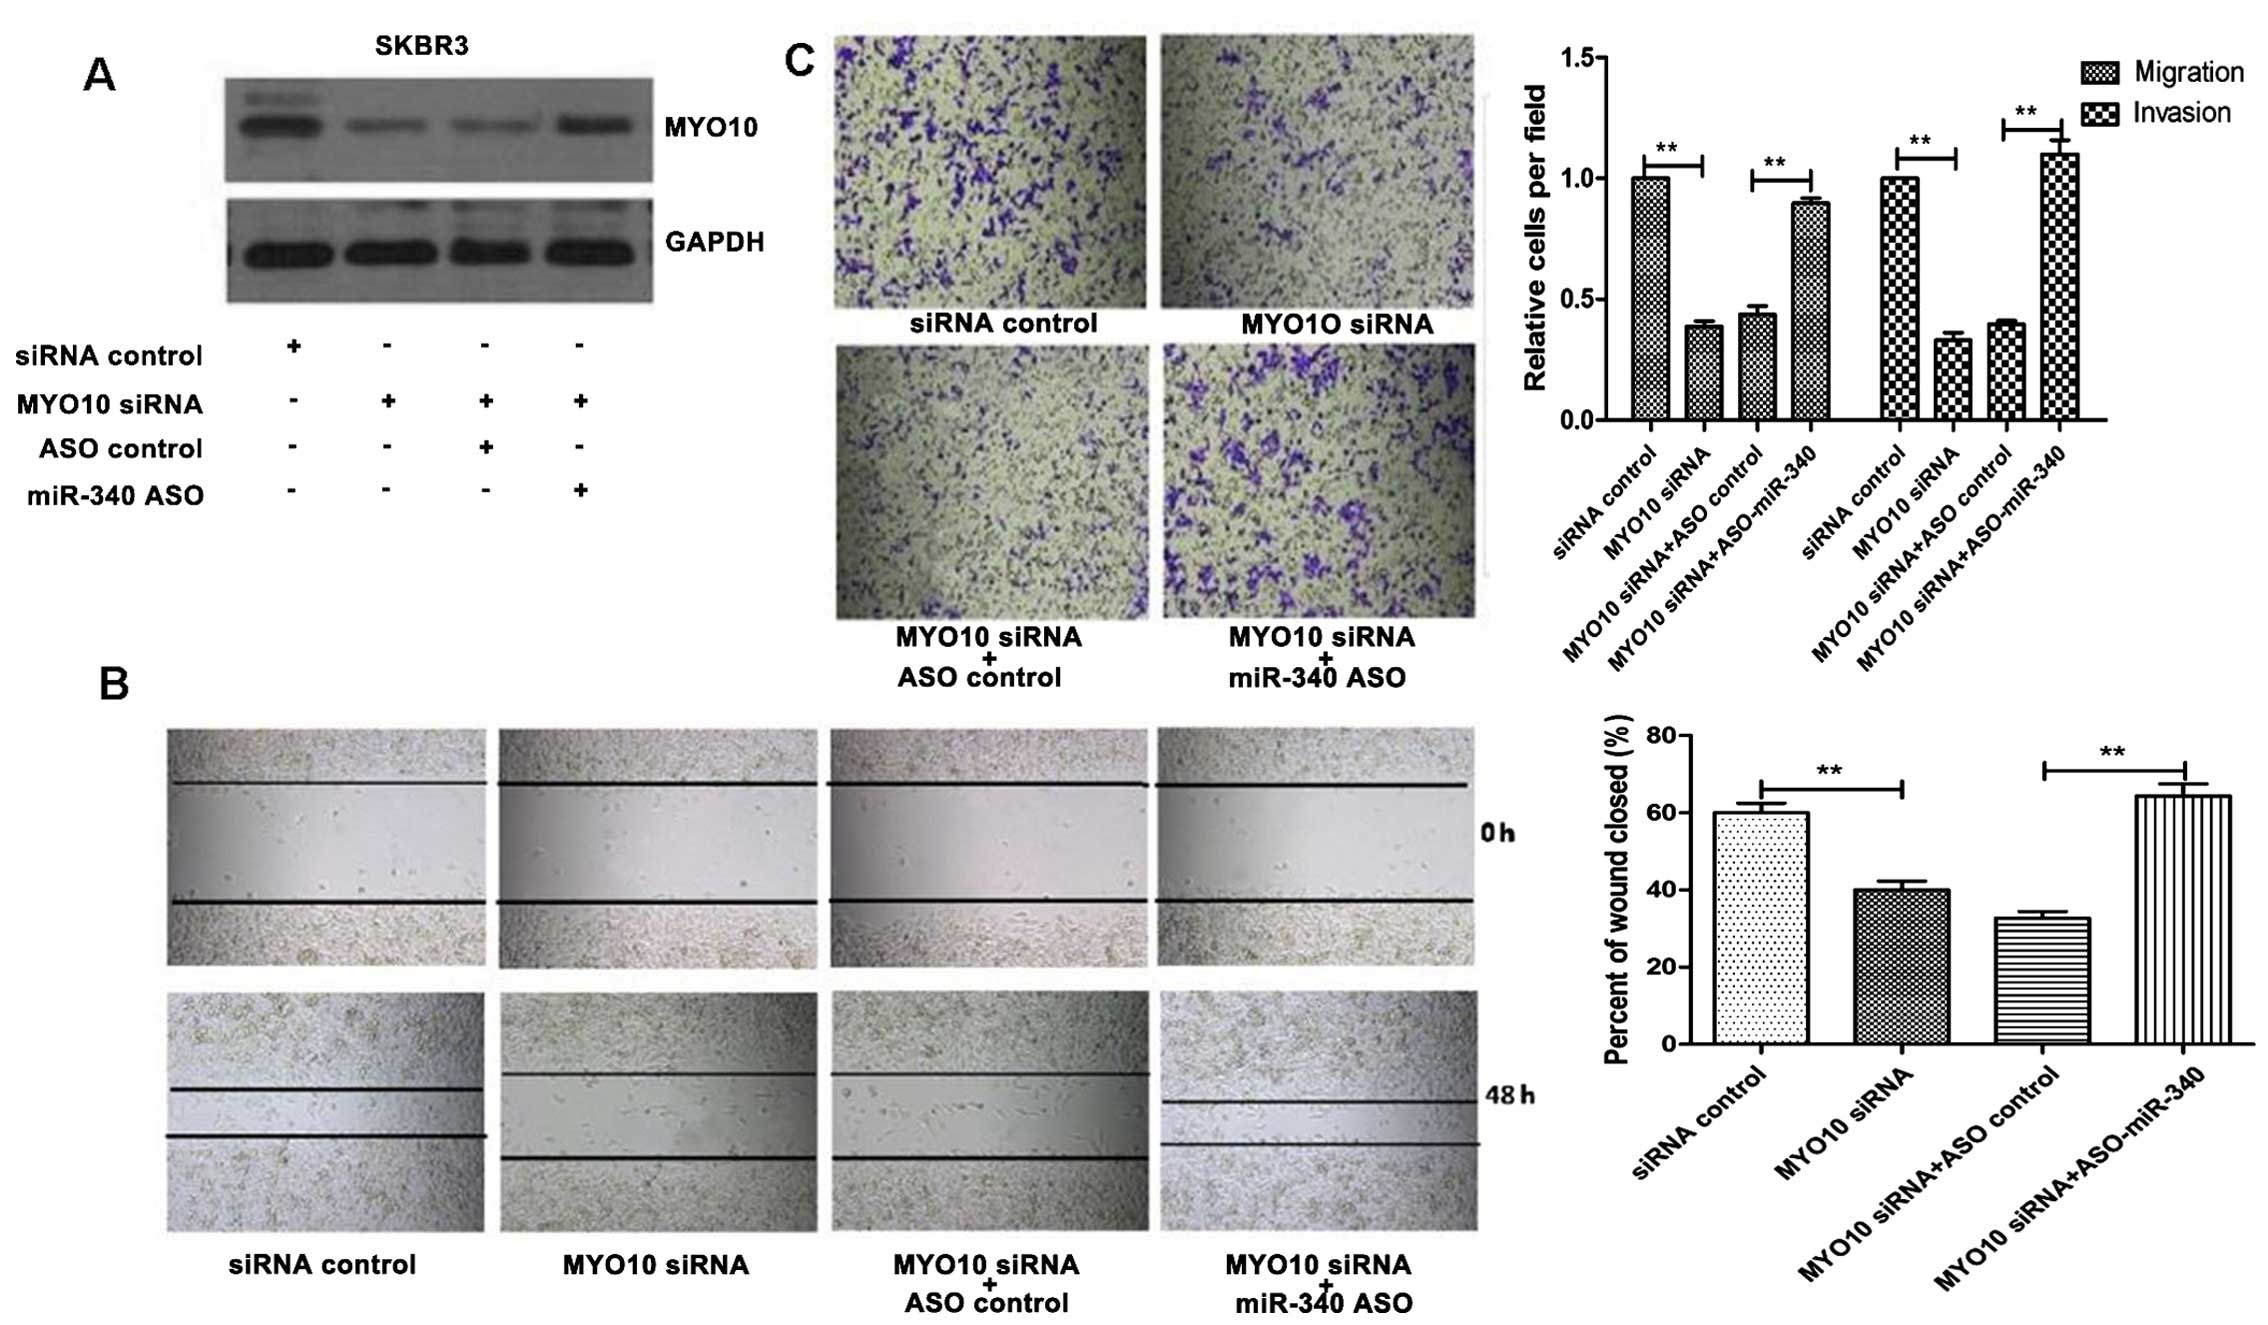 miR-340 suppresses cell migration and invasion by targeting MYO10 in